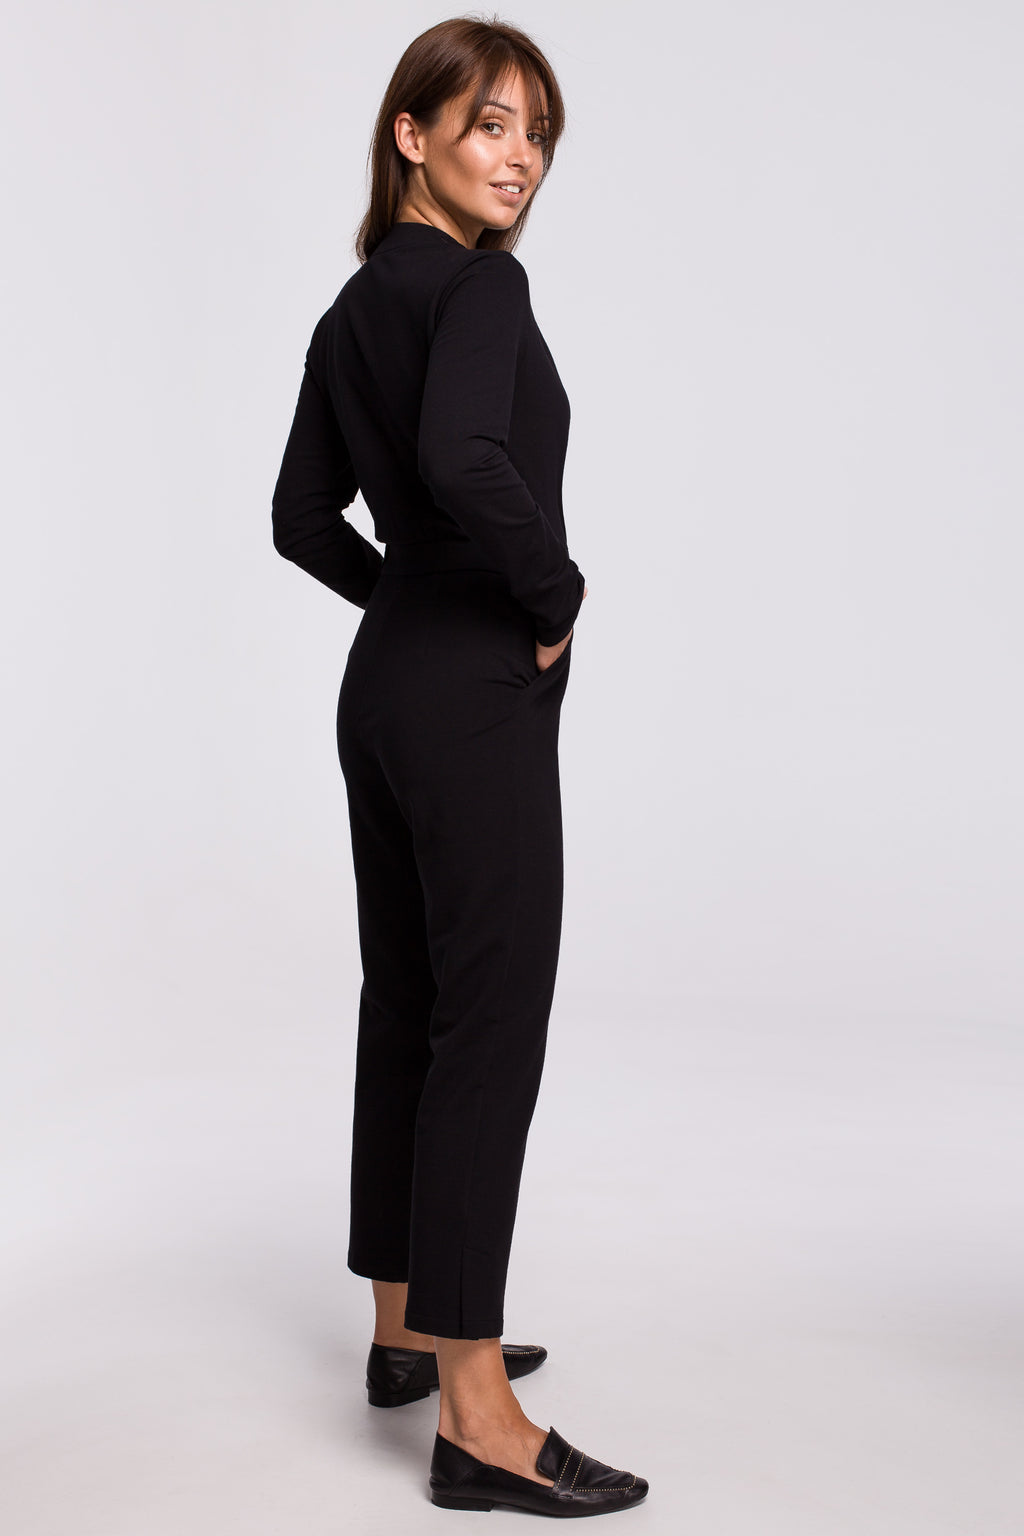 Black Wrap Front Top Jumpsuit With A Buckle - So Chic Boutique